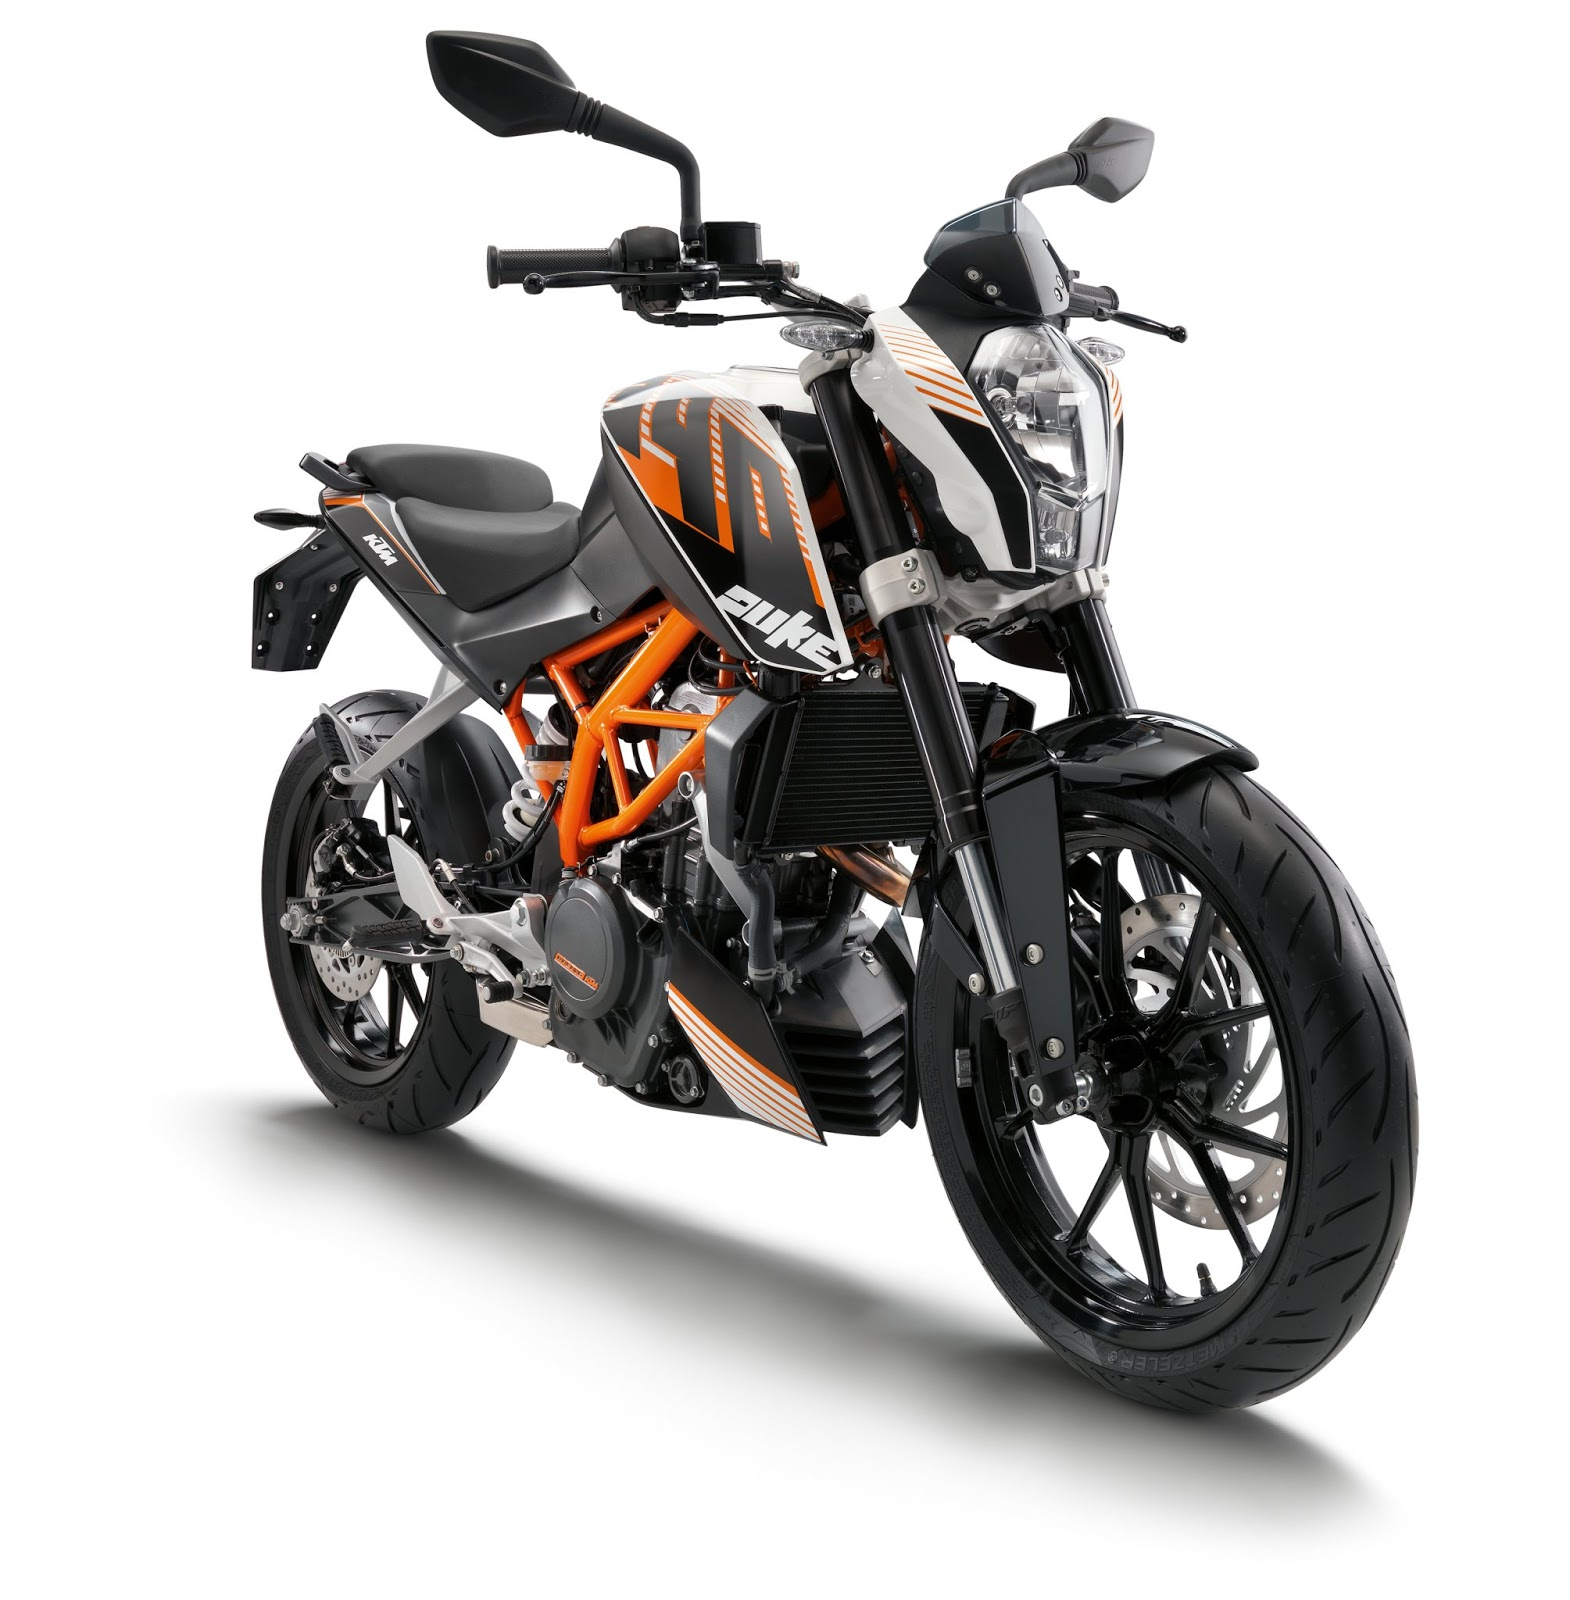 Ktm Car Price Usa